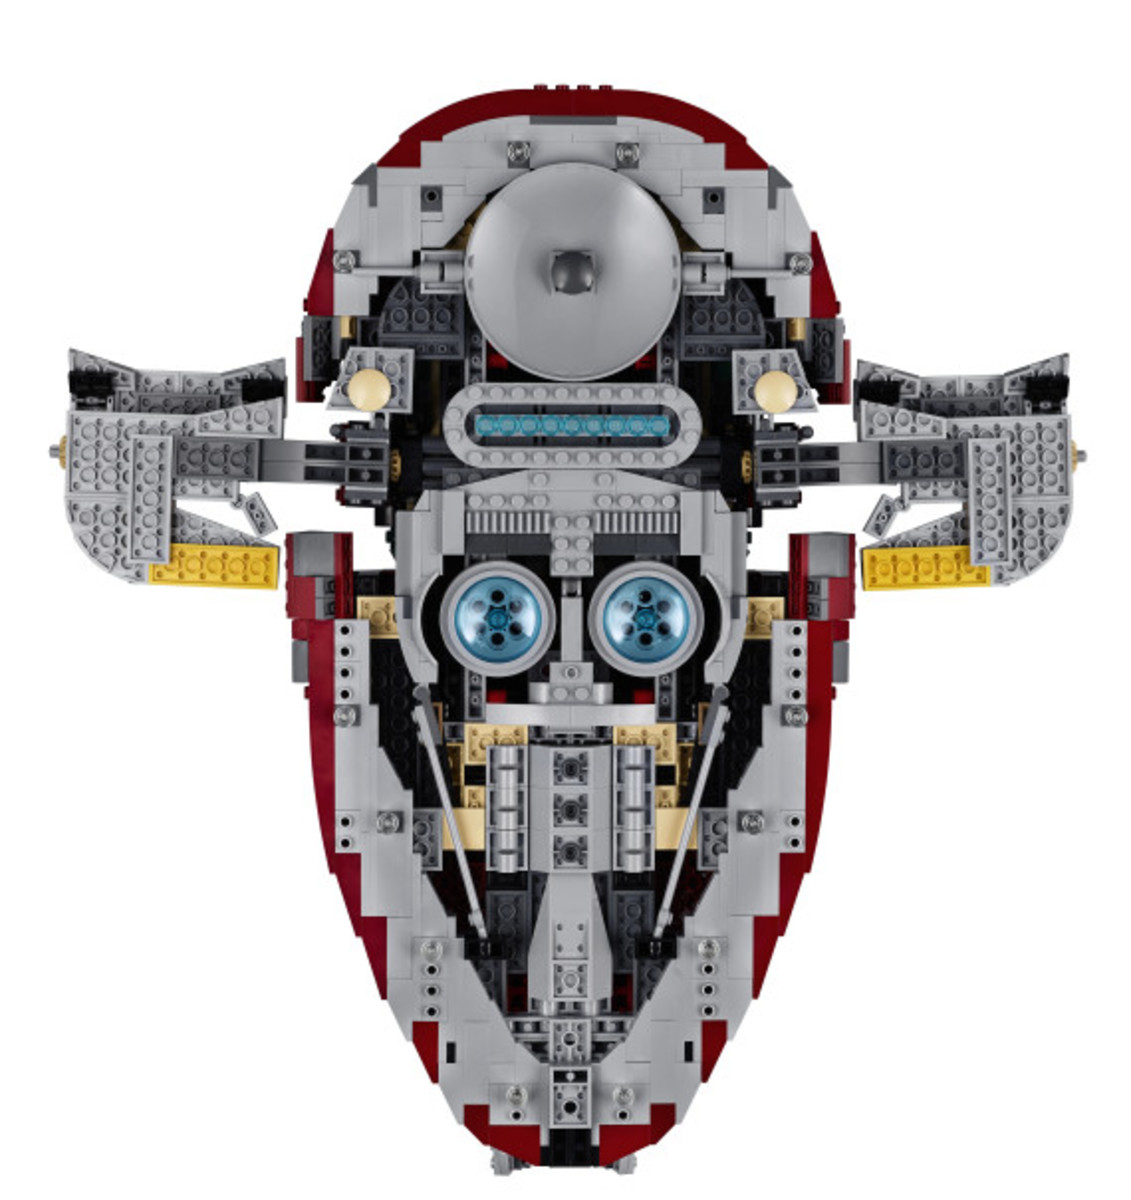 Star Wars x LEGO Ultimate Collector's Series: Boba Fett's Slave I Kit | Release Info - 8